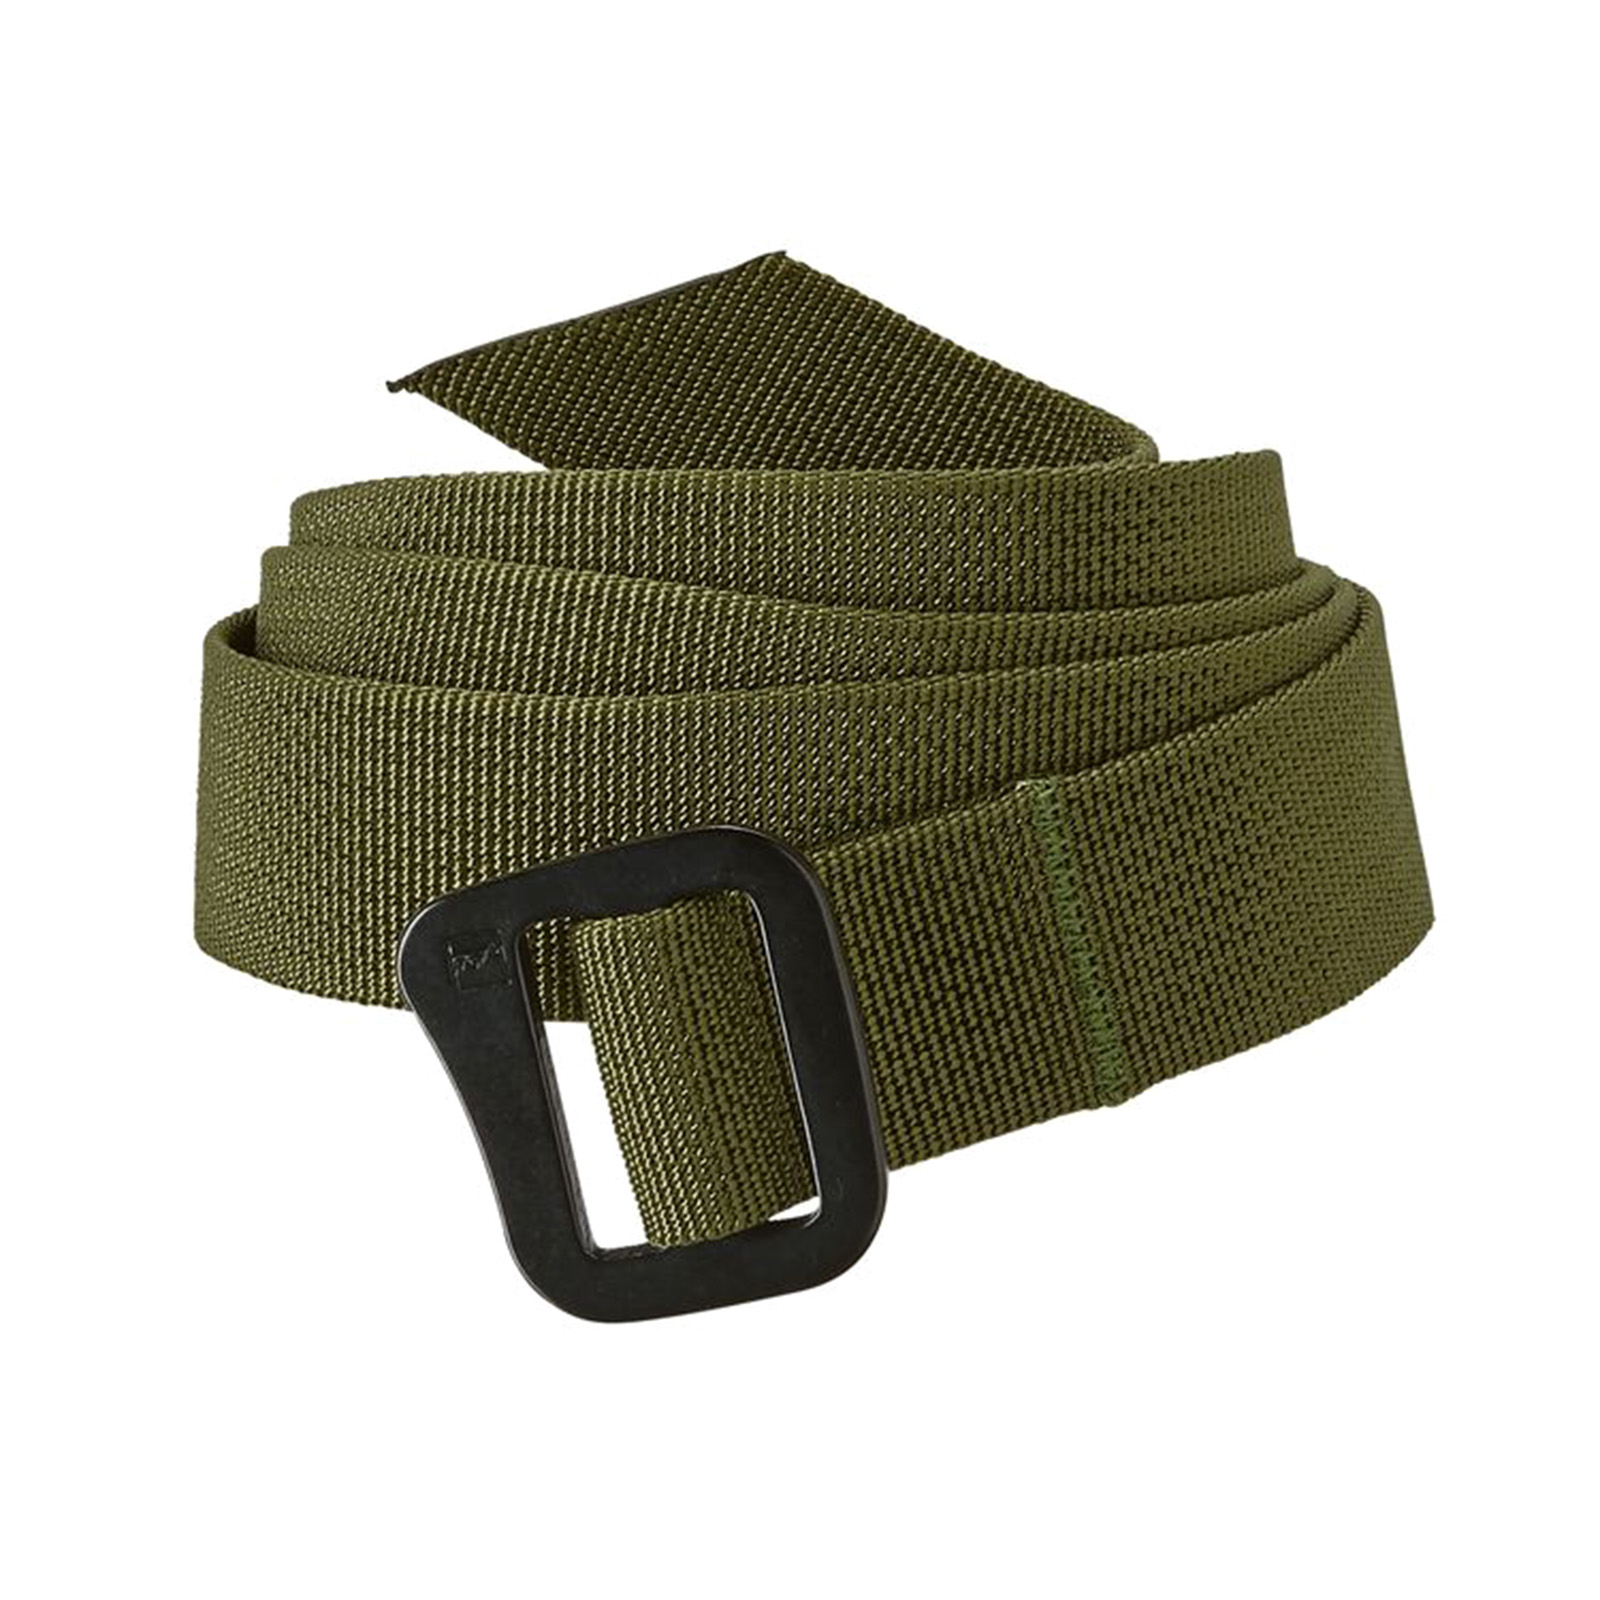 Los Angeles Sconto speciale comprare on line Details about Patagonia Friction Belt Willow Herb Green - Cintura Verde